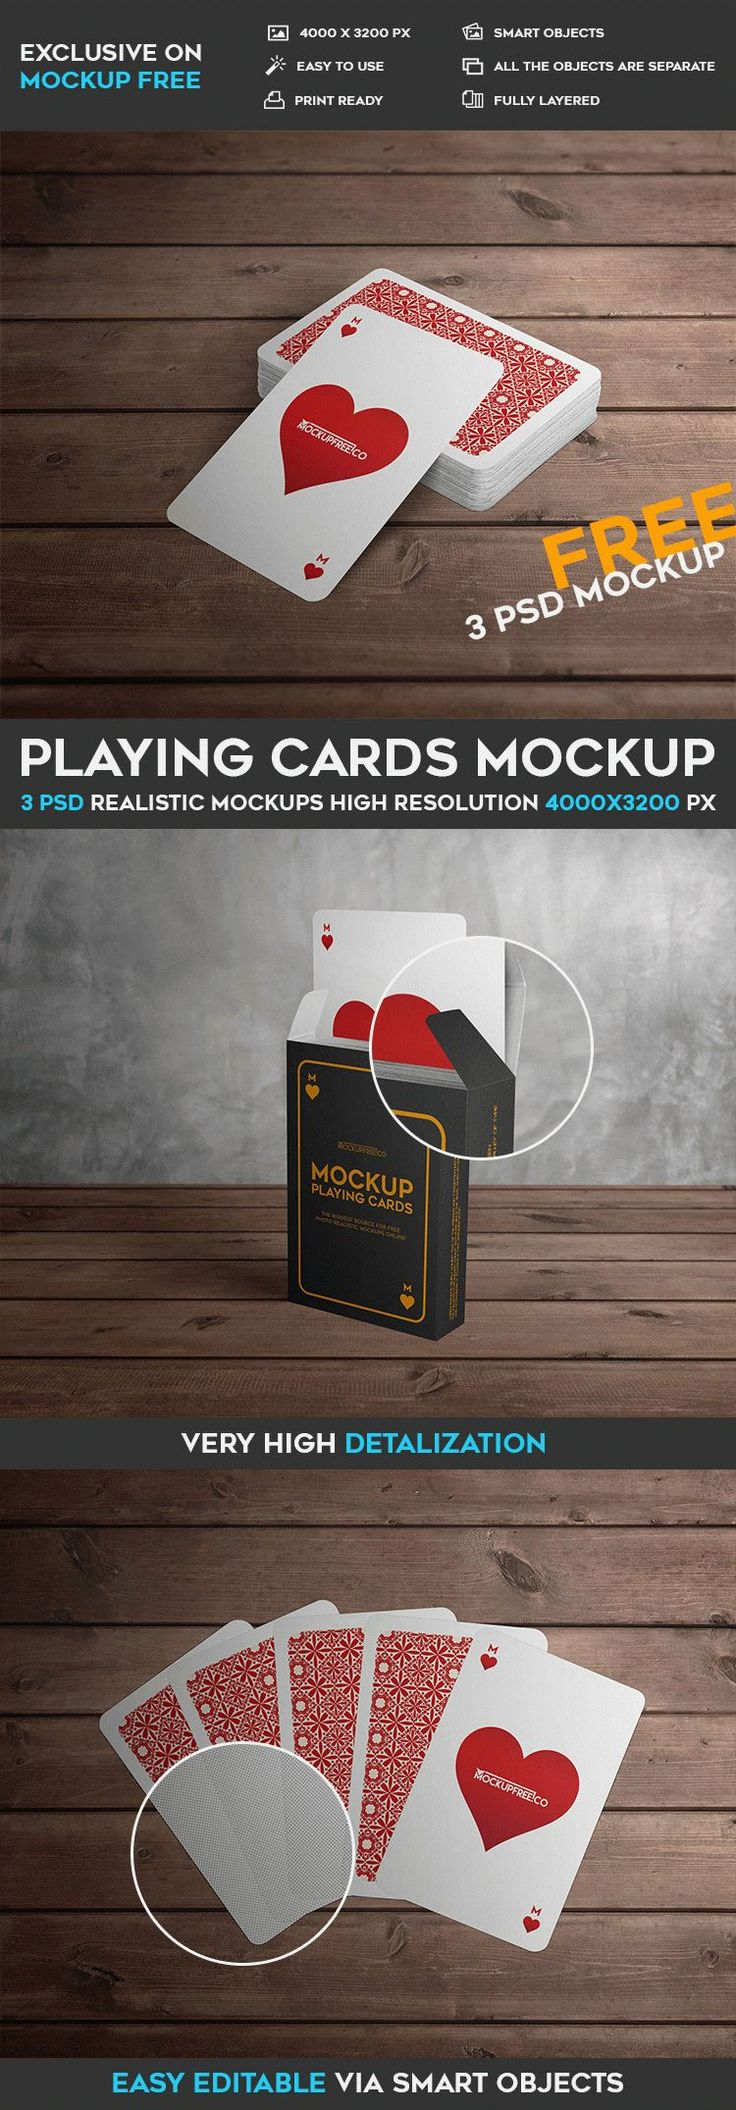 3 Free Playing Cards PSD Mockups | Free PSD Templates | #free #photoshop #mockup #psd #playing #card